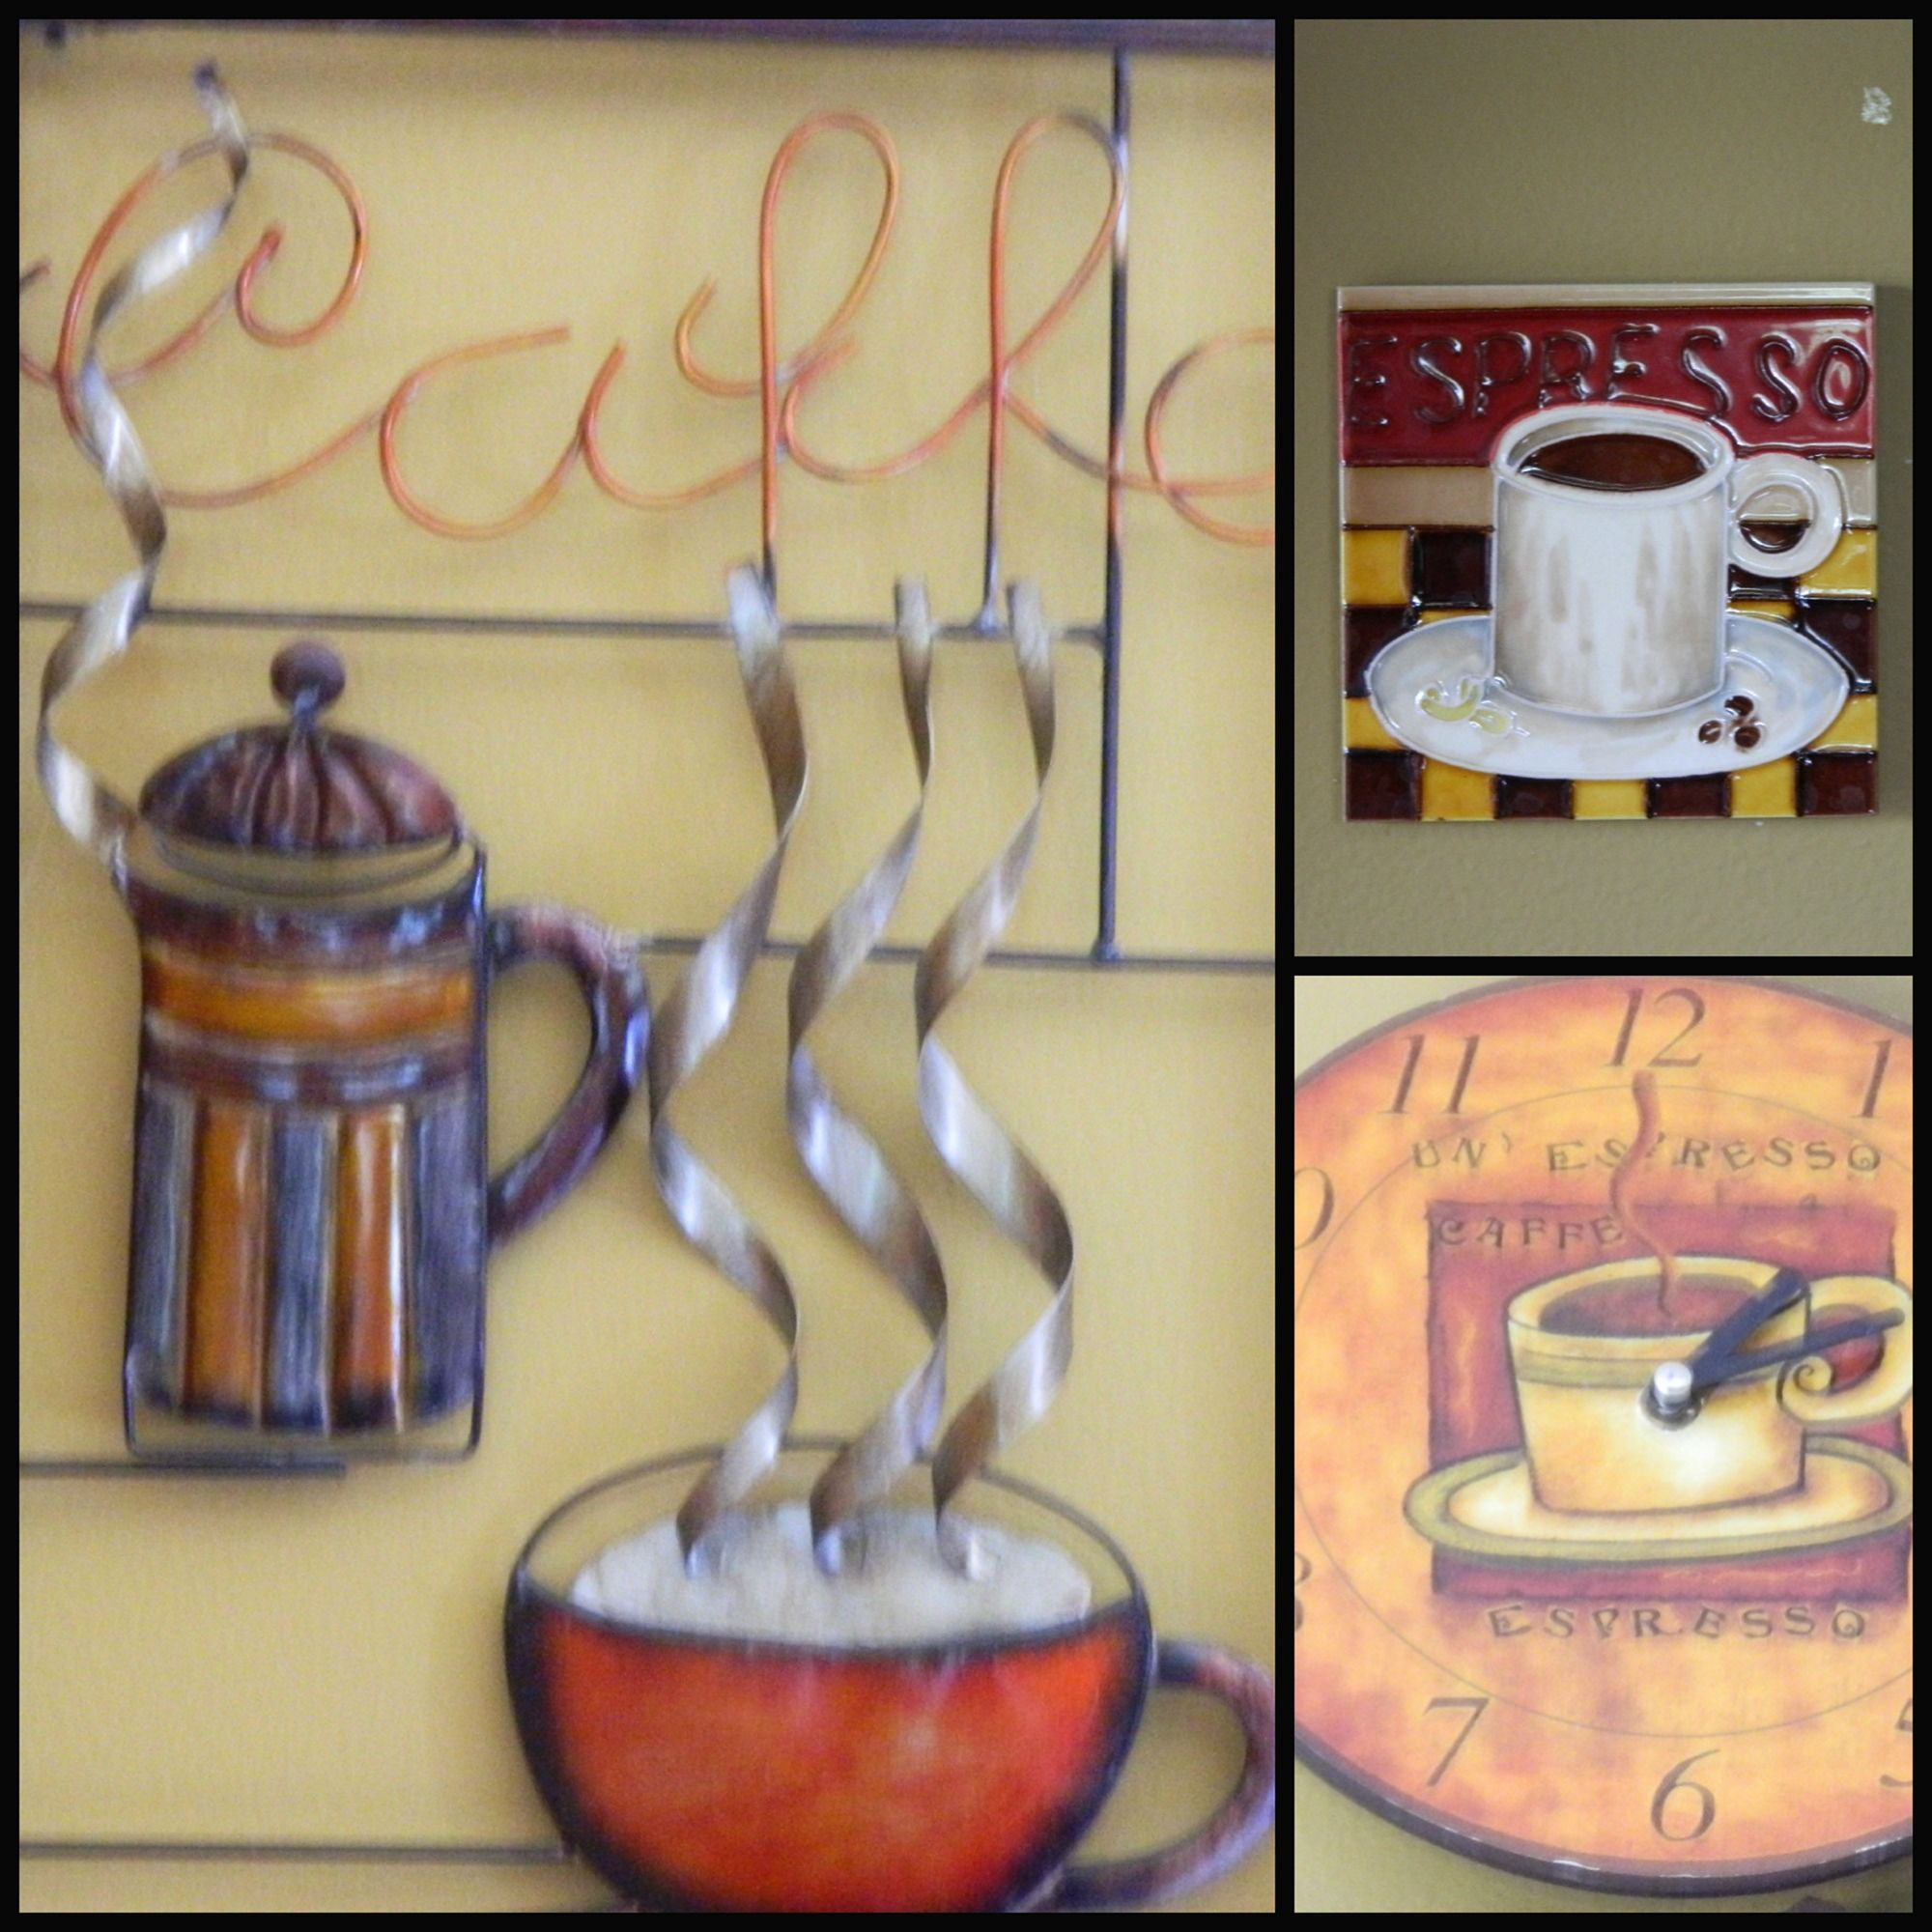 Great Coffee Themed Kitchen Wall Decor Ideas - The Wall Art ...